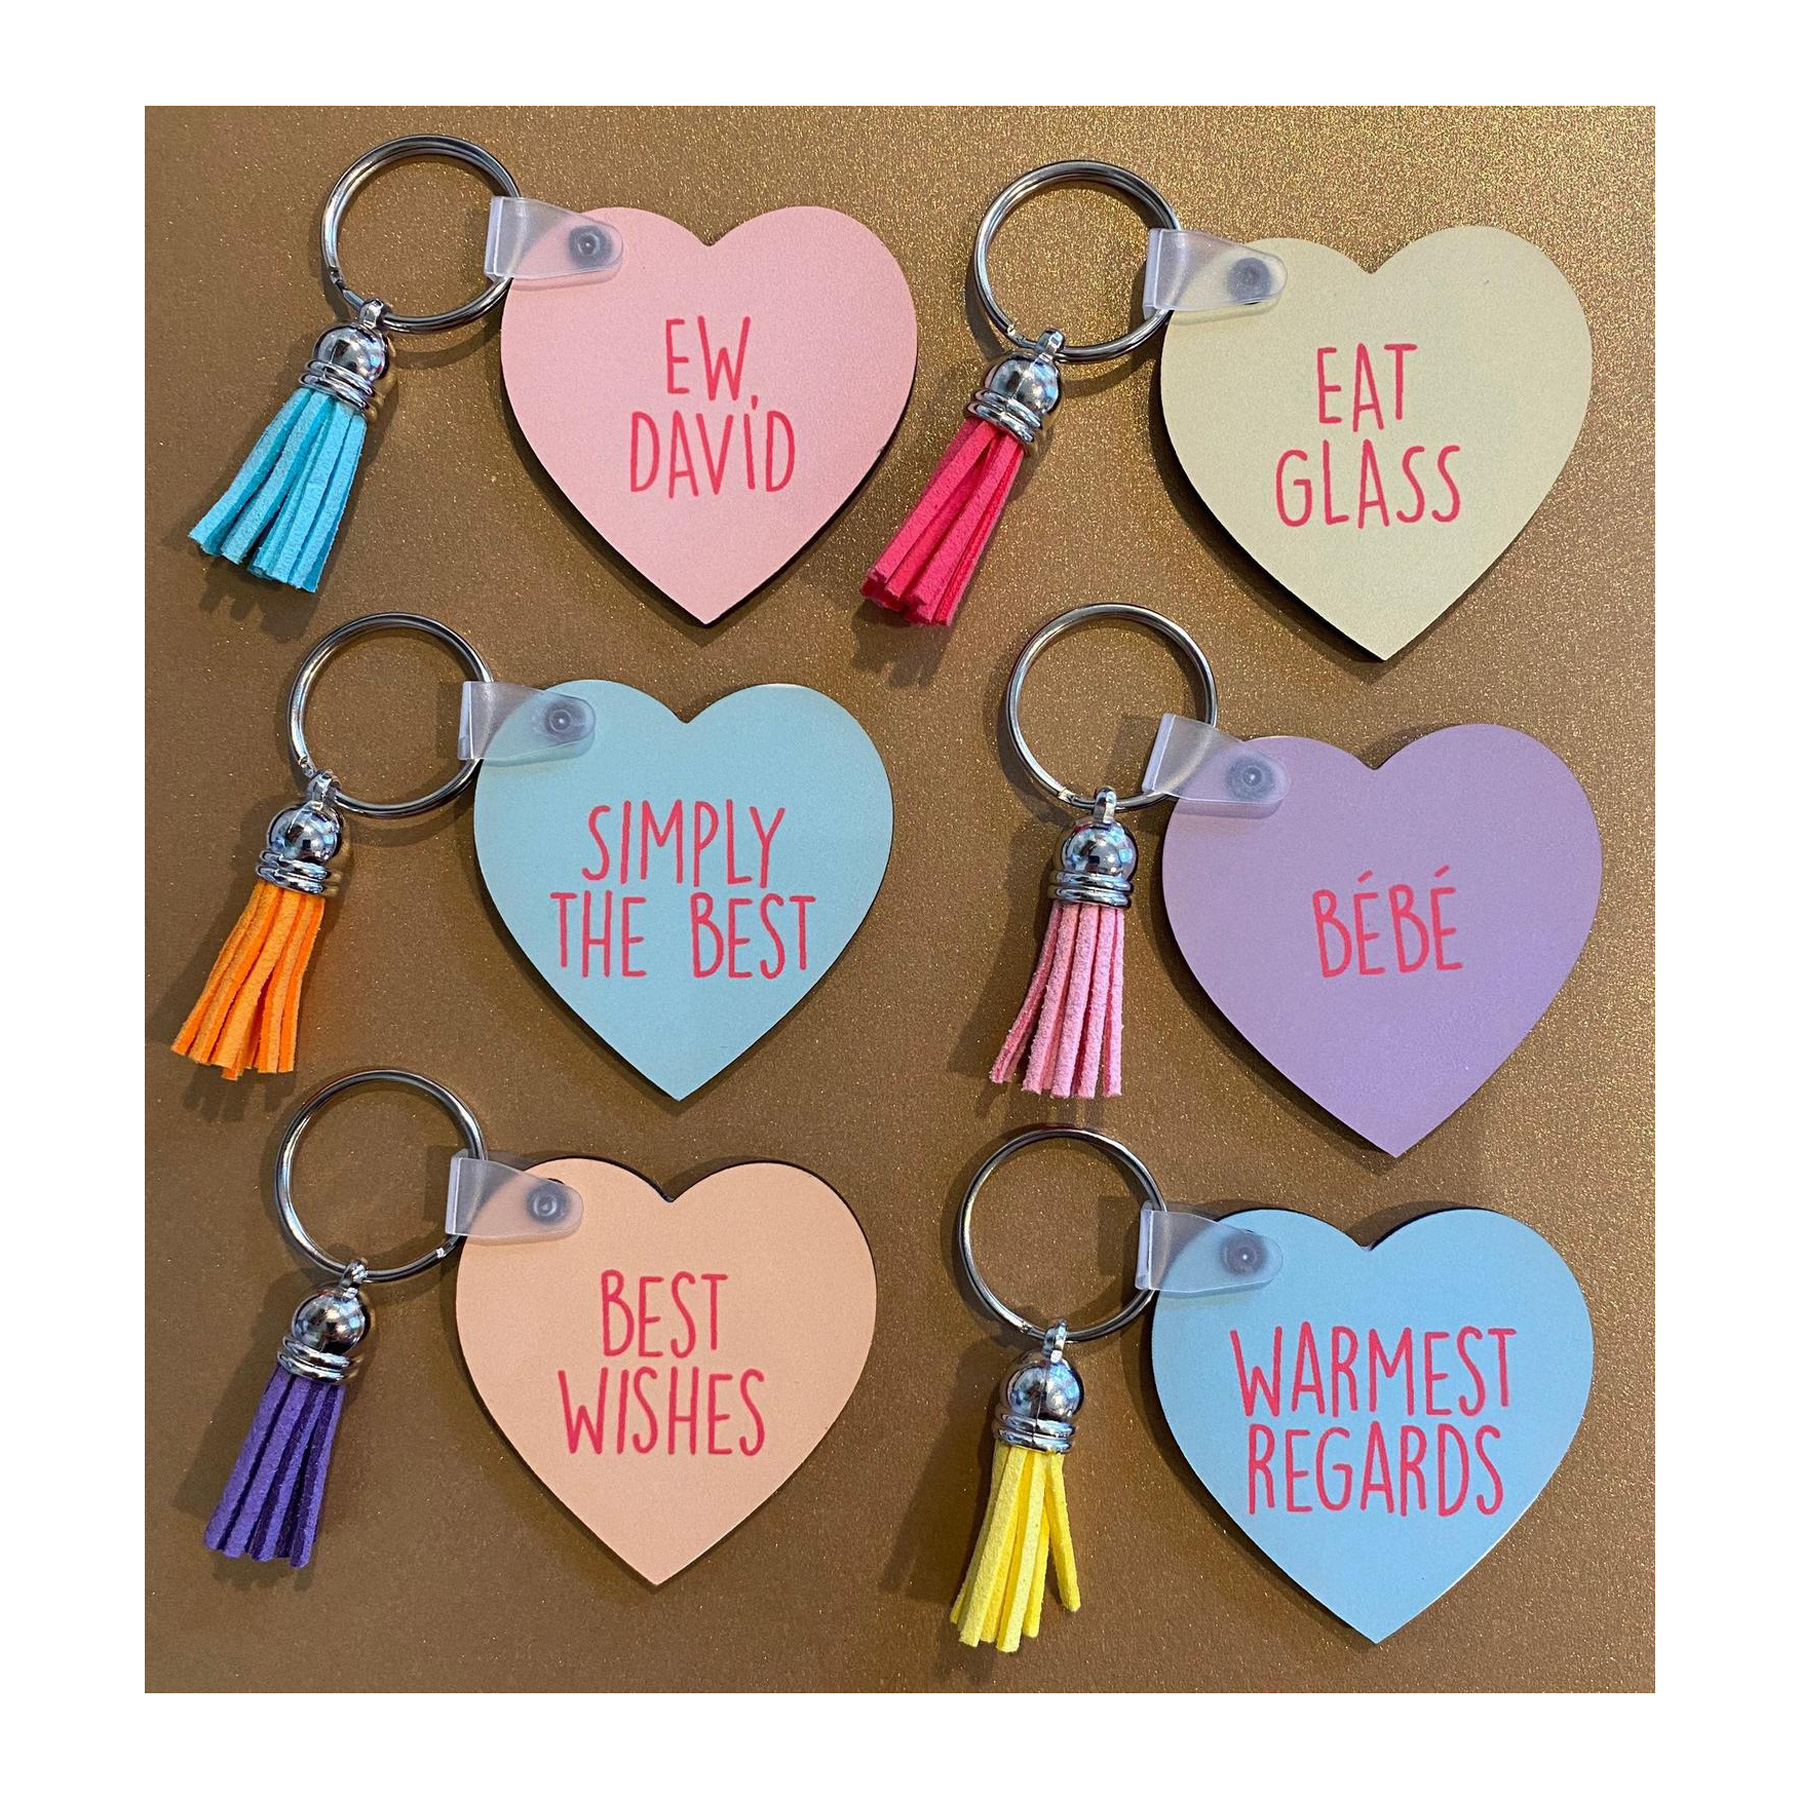 Funny Valentine's Day Gifts 2021: Conversation Heart keychains with funny Schitt's Creek quotes